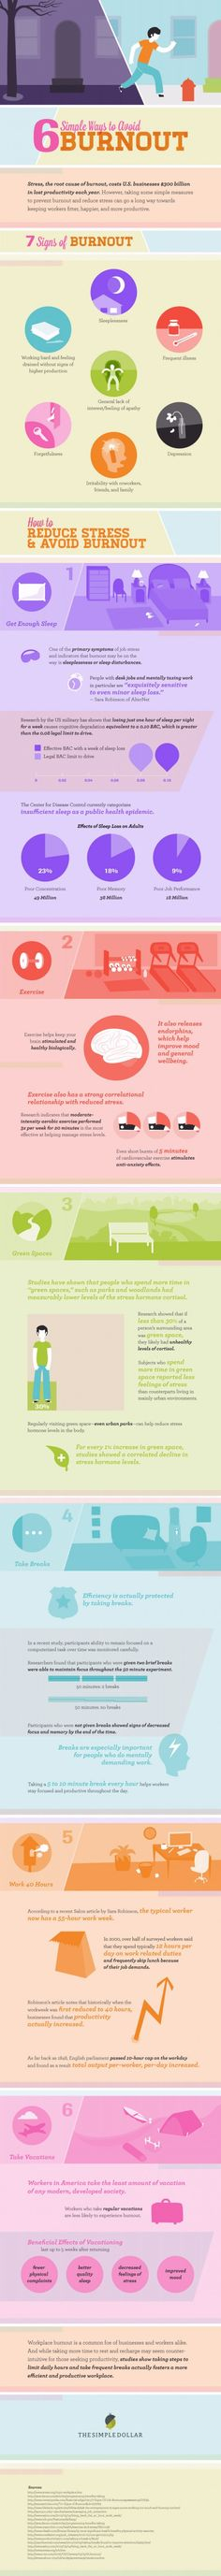 6 Simple Ways to Avoid Burnout- Studies estimate that stress costs US businesses up to $ 300 billion dollars in lost productivity each year. In the wake of such statistics, there is beginning to be a larger discussion about burnout, which is essentially when stress and pressure (often in the workplace) have become so great that overall quality of life and quality of work become negatively impacted. #infographic